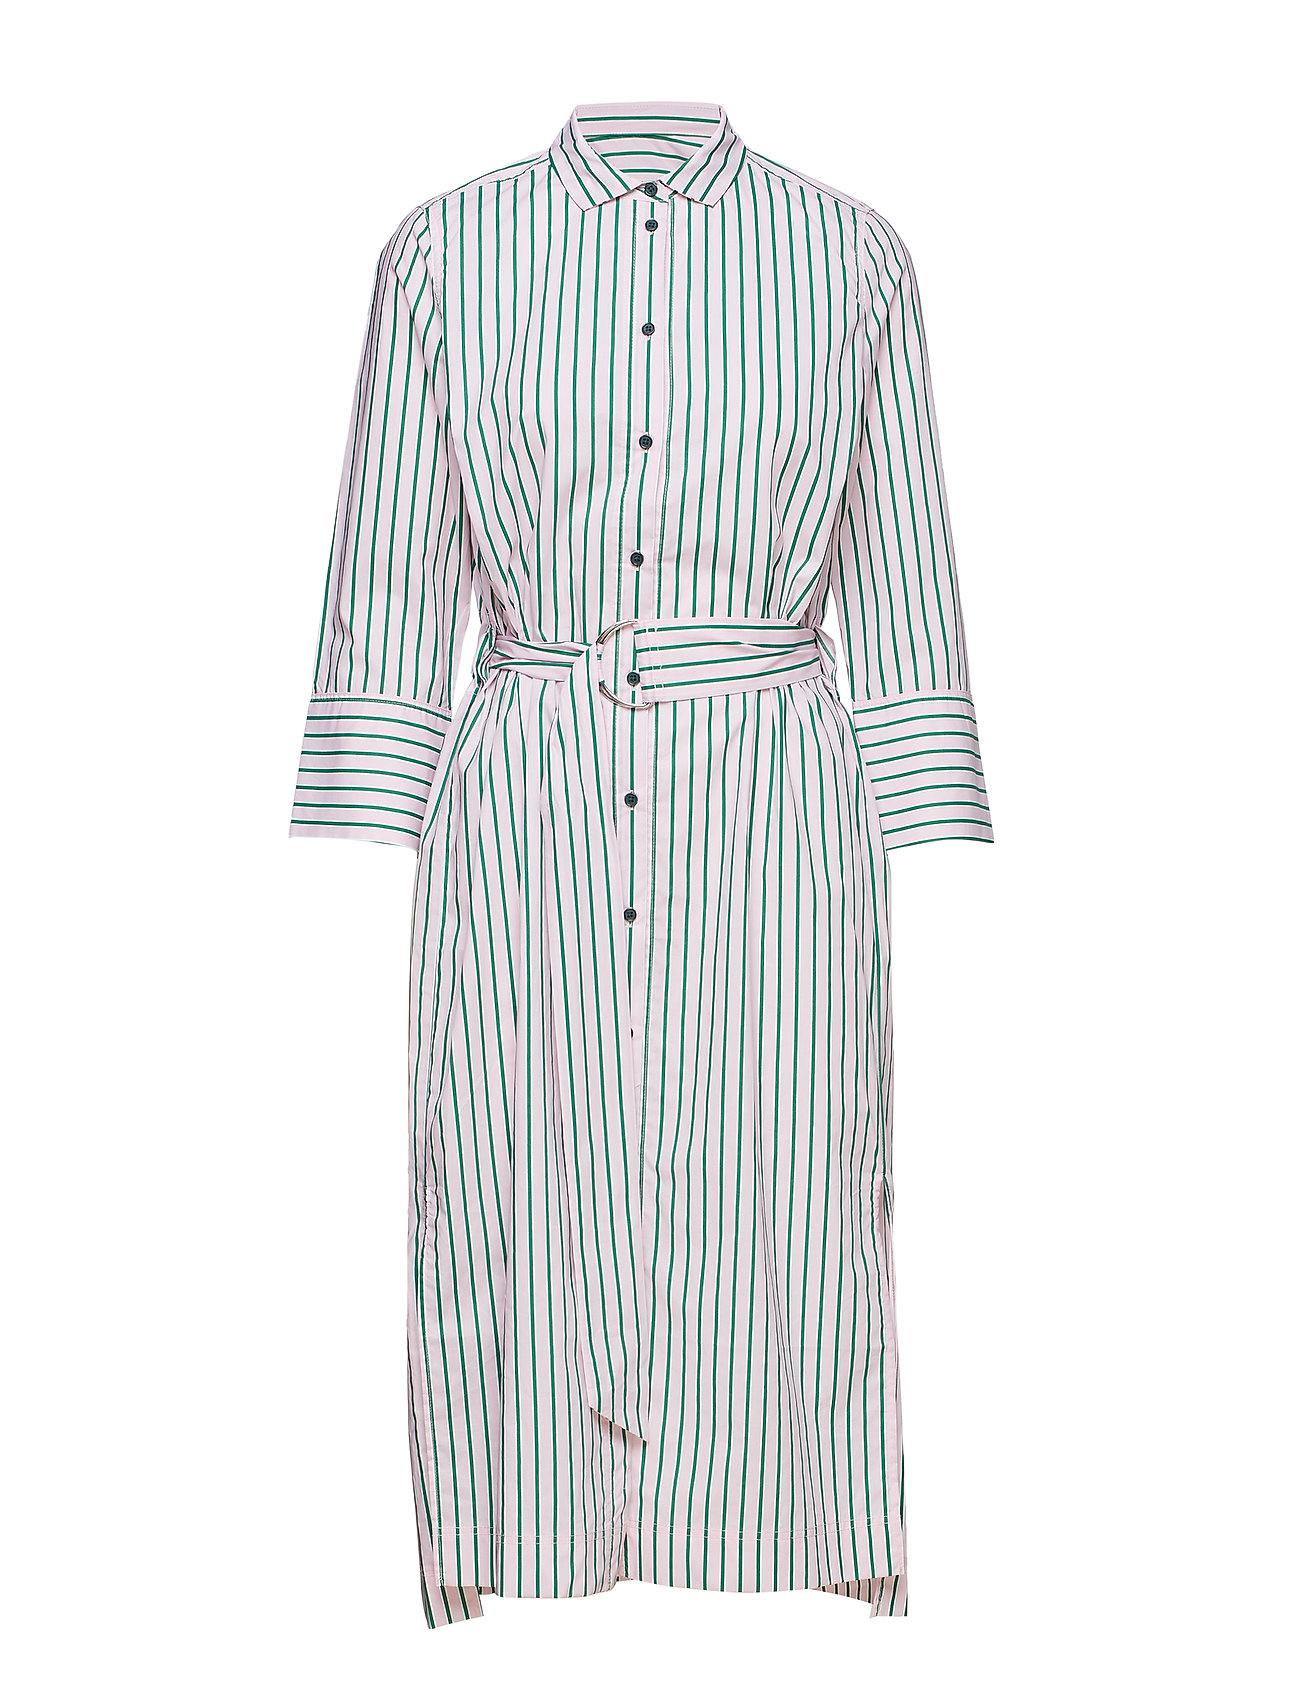 a3177c0b0f18 Heloise Shirt Dress (Rose Shadow Stripe) (66 €) - InWear - | Boozt.com